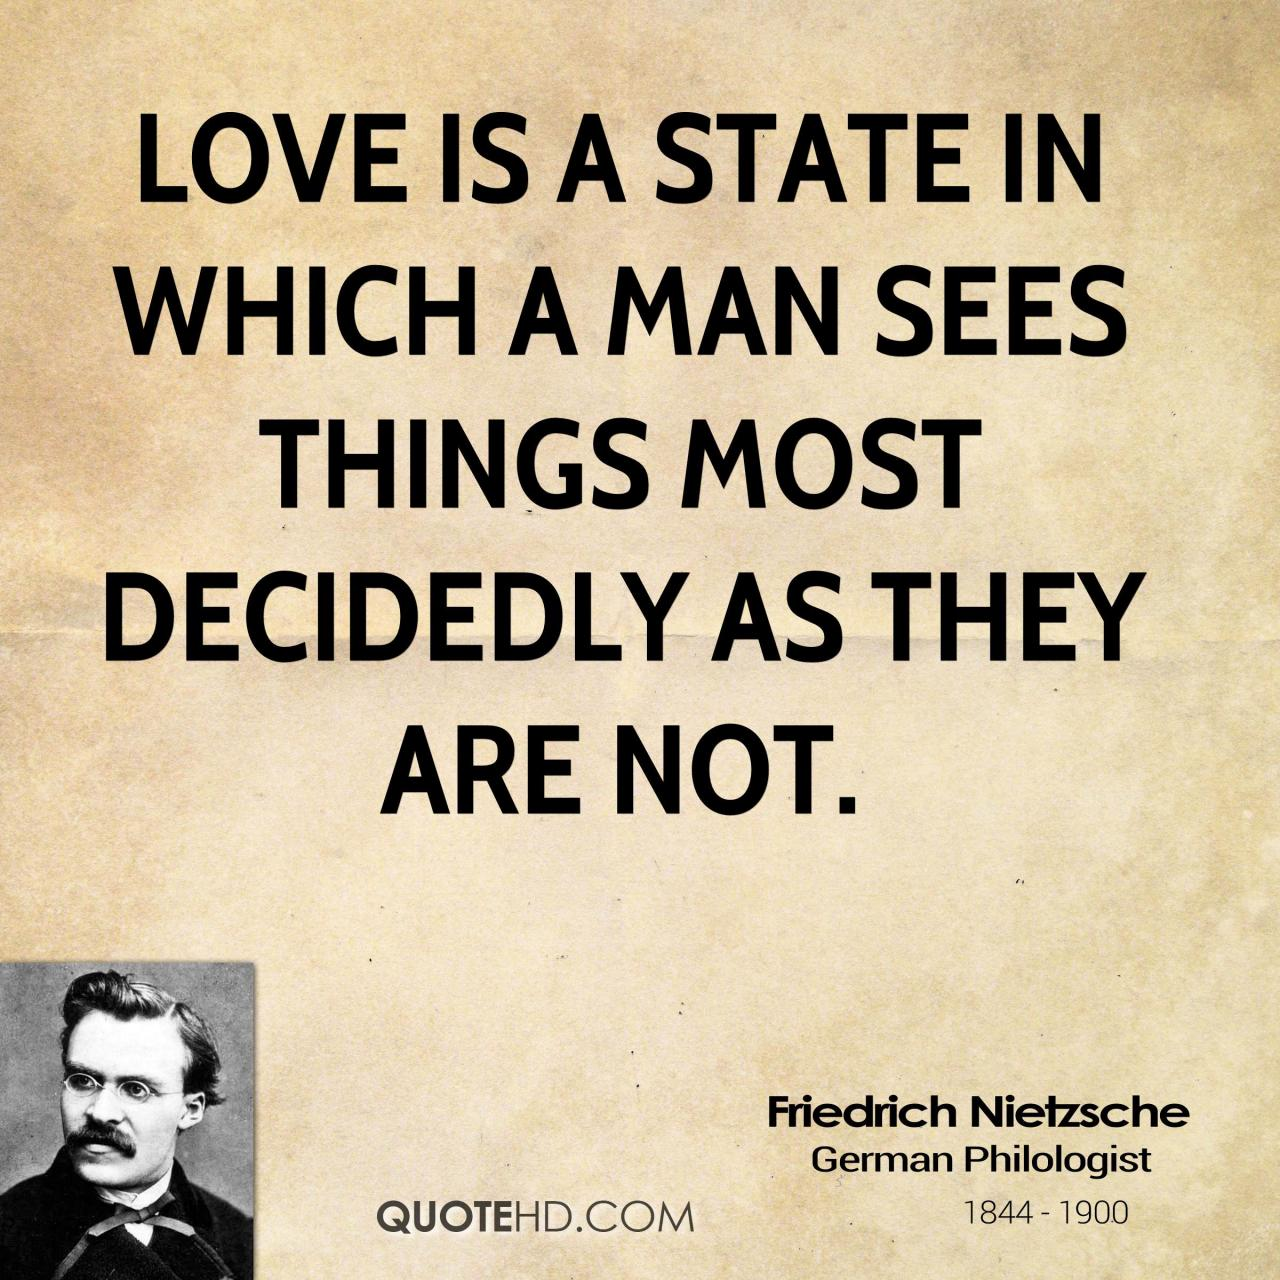 Love Is A State In Which A Man Sees Things Most Decidedly As They Are Not